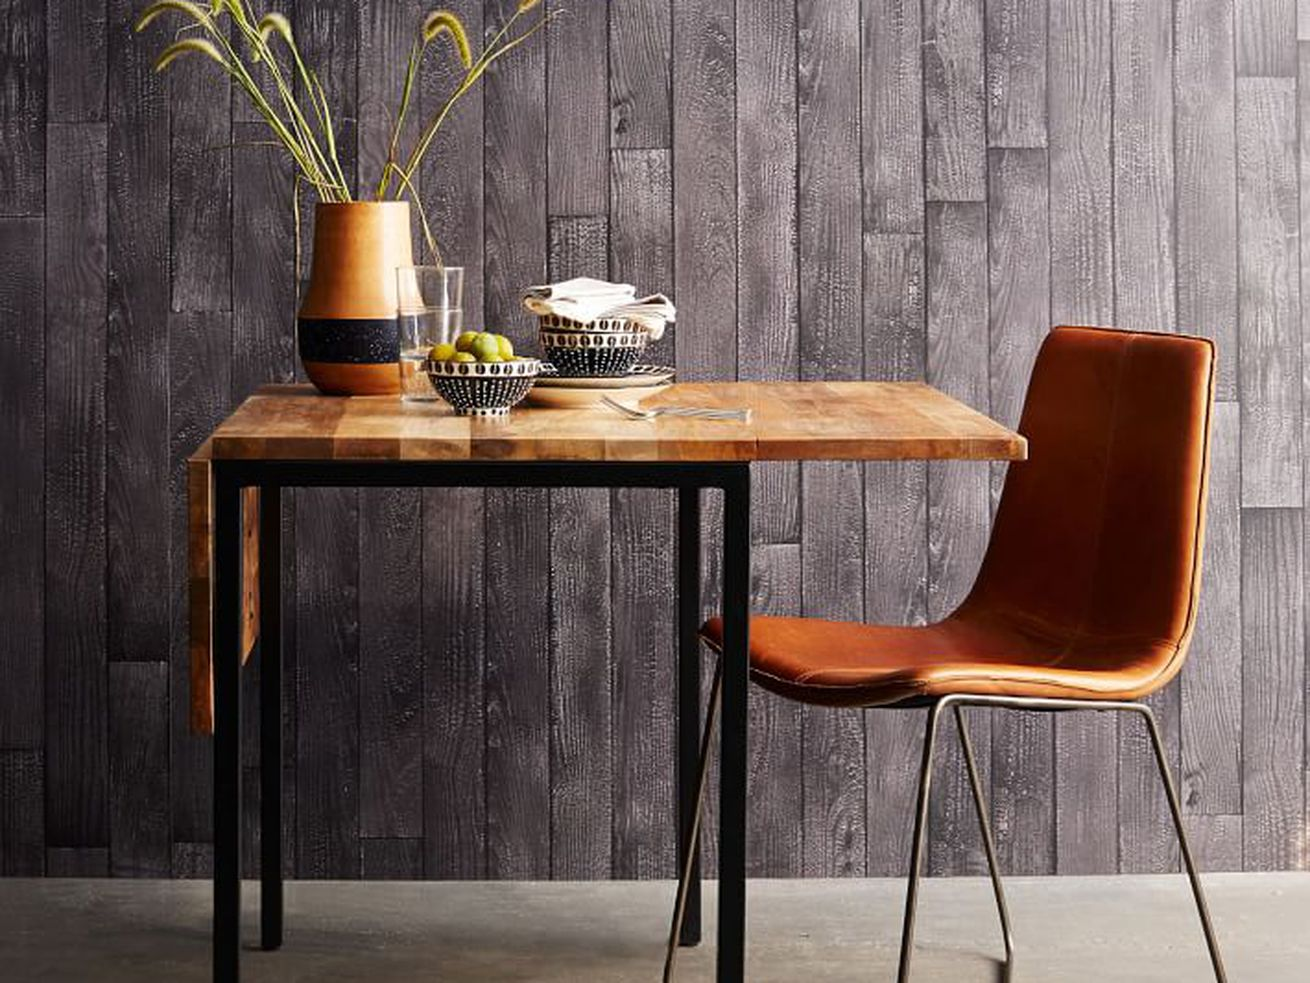 A wood and metal table sits next to a leather chair.